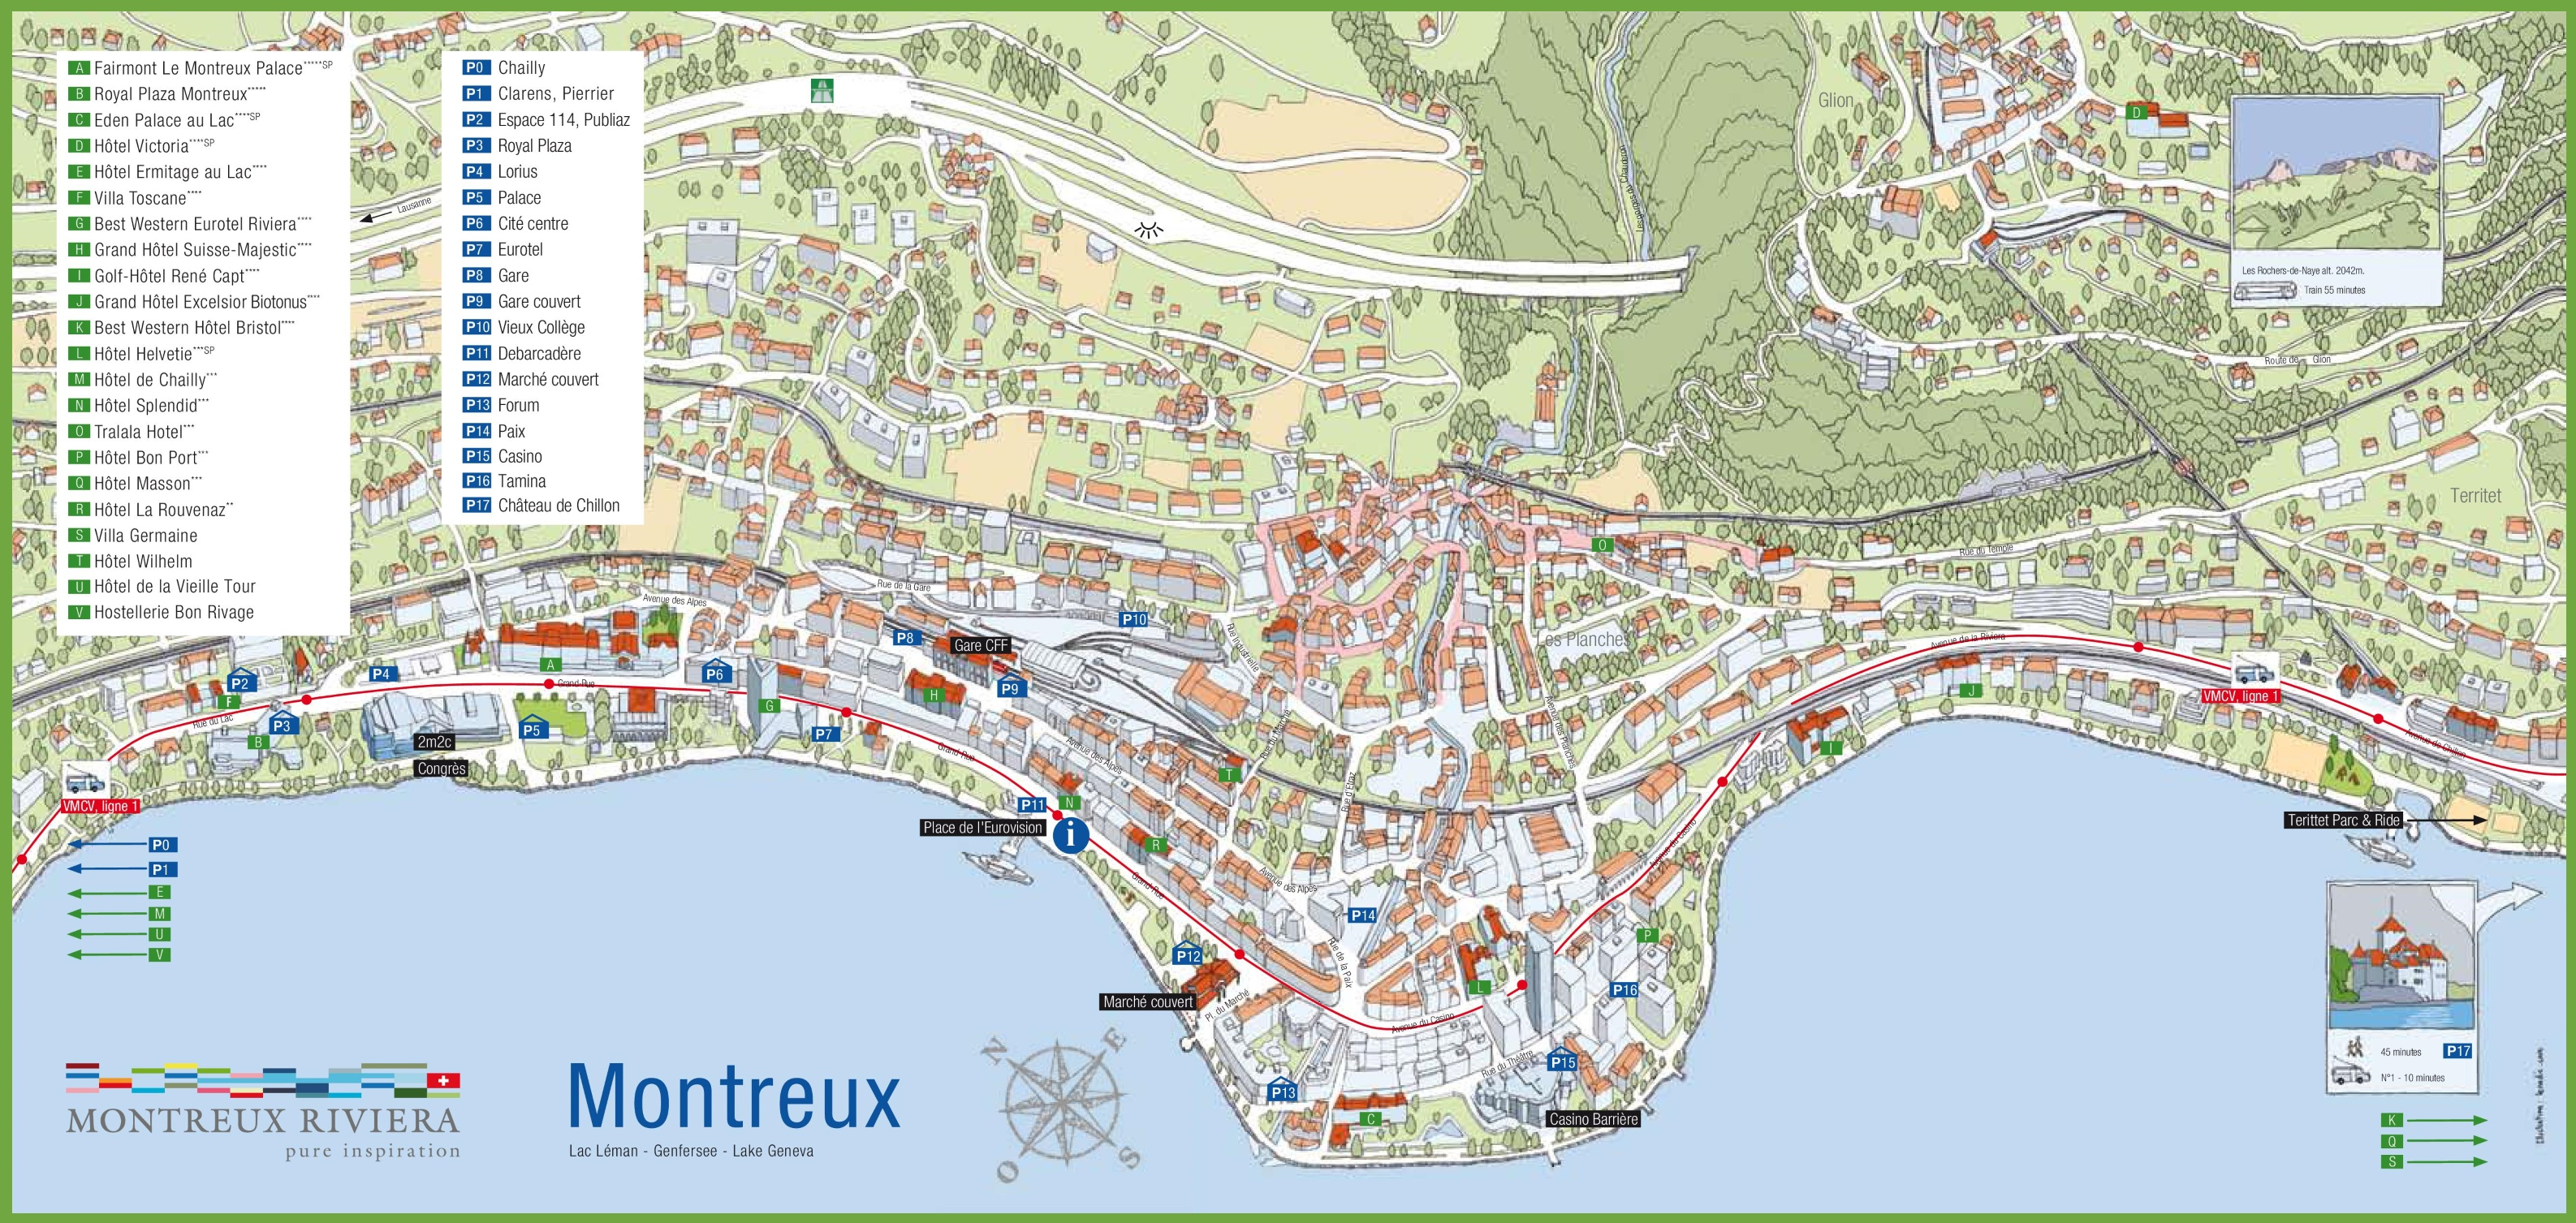 Montreux tourist map